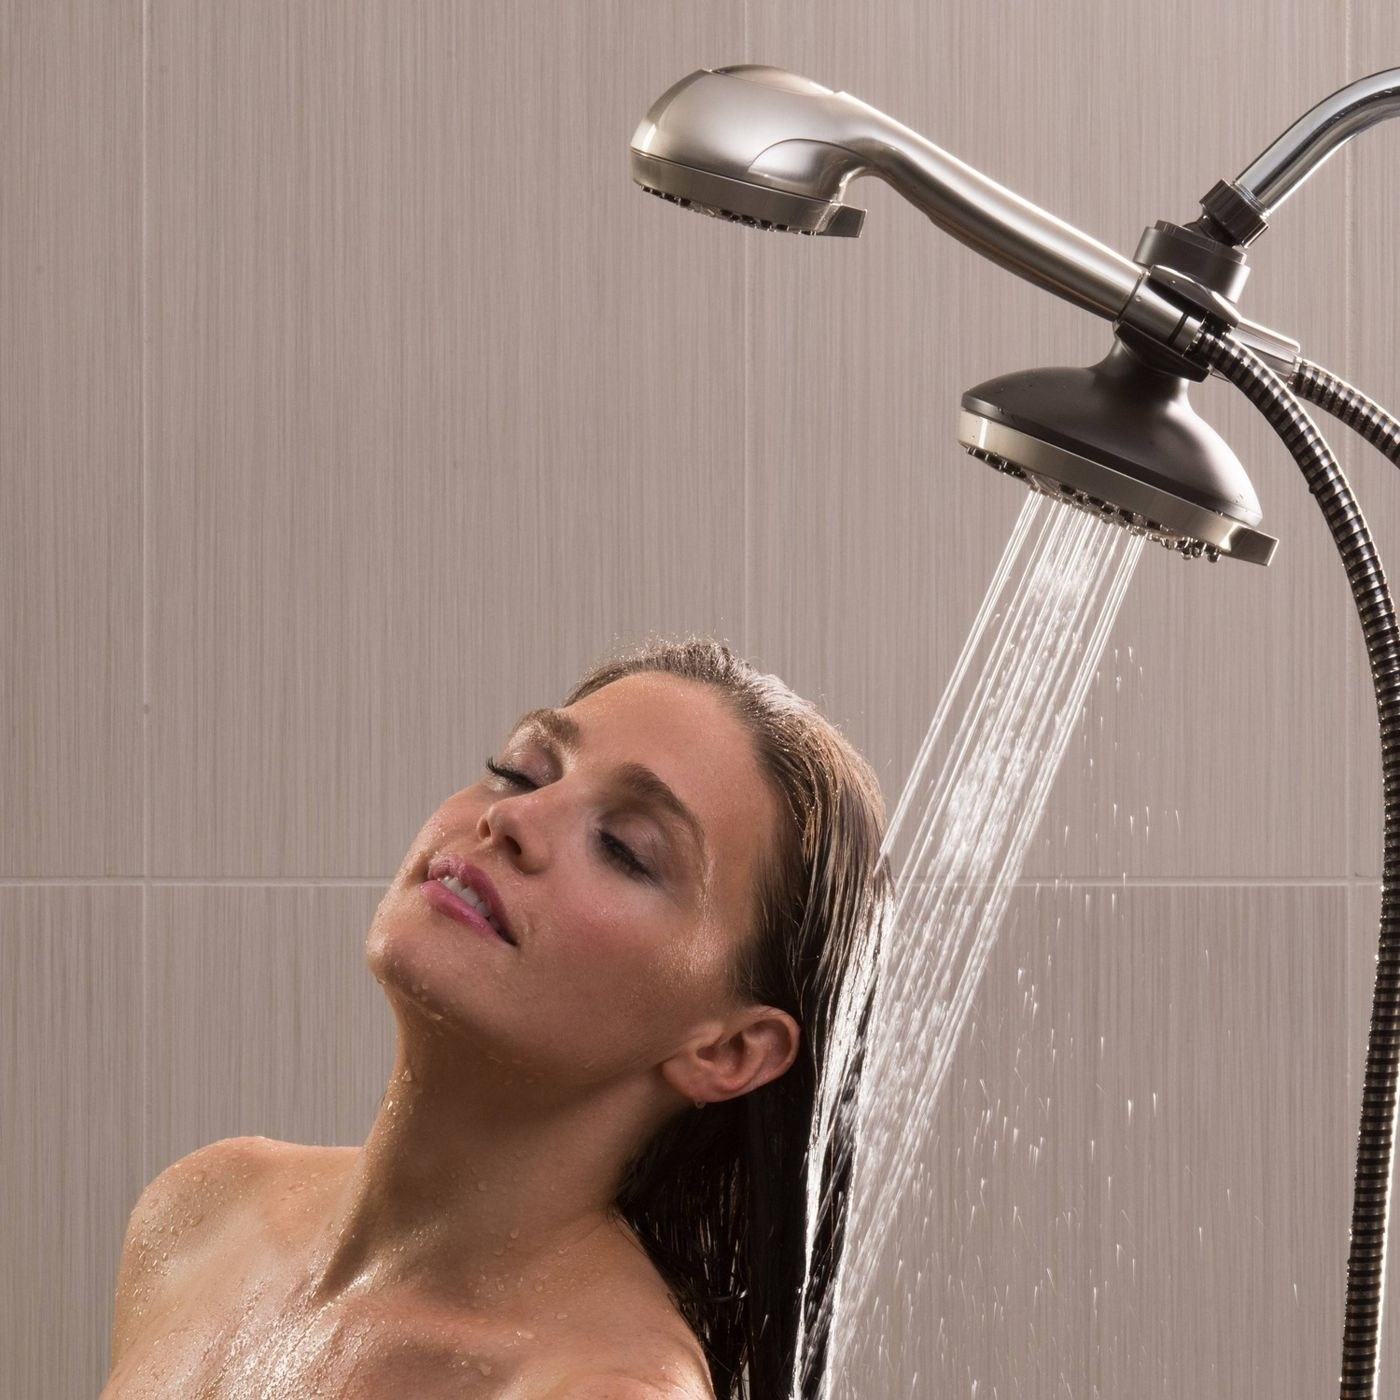 A person showering using the shower head